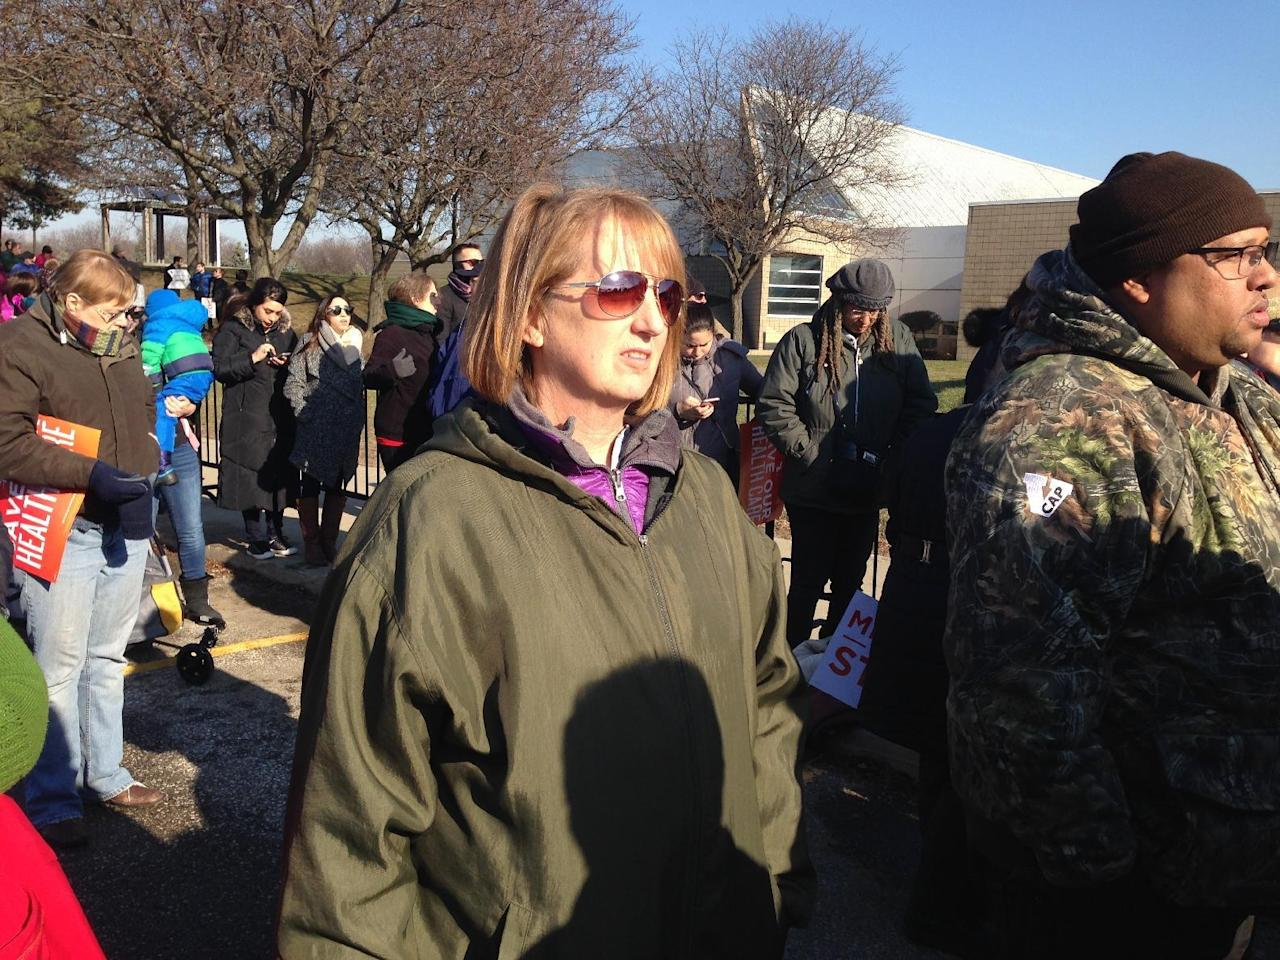 Lisa Bible is one of thousands supporters of the Affordable Care Act who turned out Sunday, Jan. 15, 2016, in Warren, Mich., to hear Democratic U.S. Sen. Bernie Sanders speak against Republican efforts to repeal the law. Bible has her health insurance through the law and worries that she may not be able to afford medical treatment if it's repealed. (AP Photo/Corey Williams)